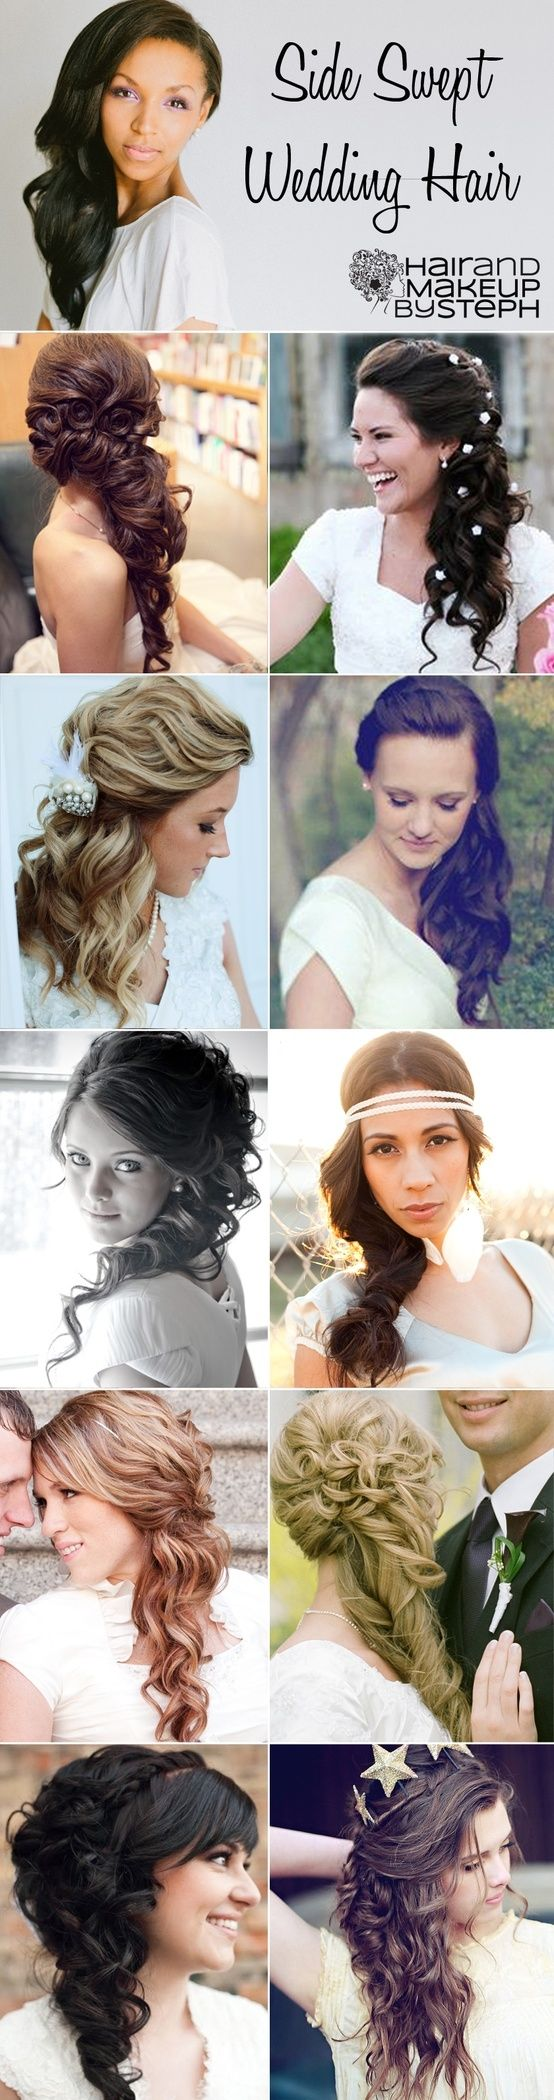 best wedding hair images on pinterest wedding hair styles hair